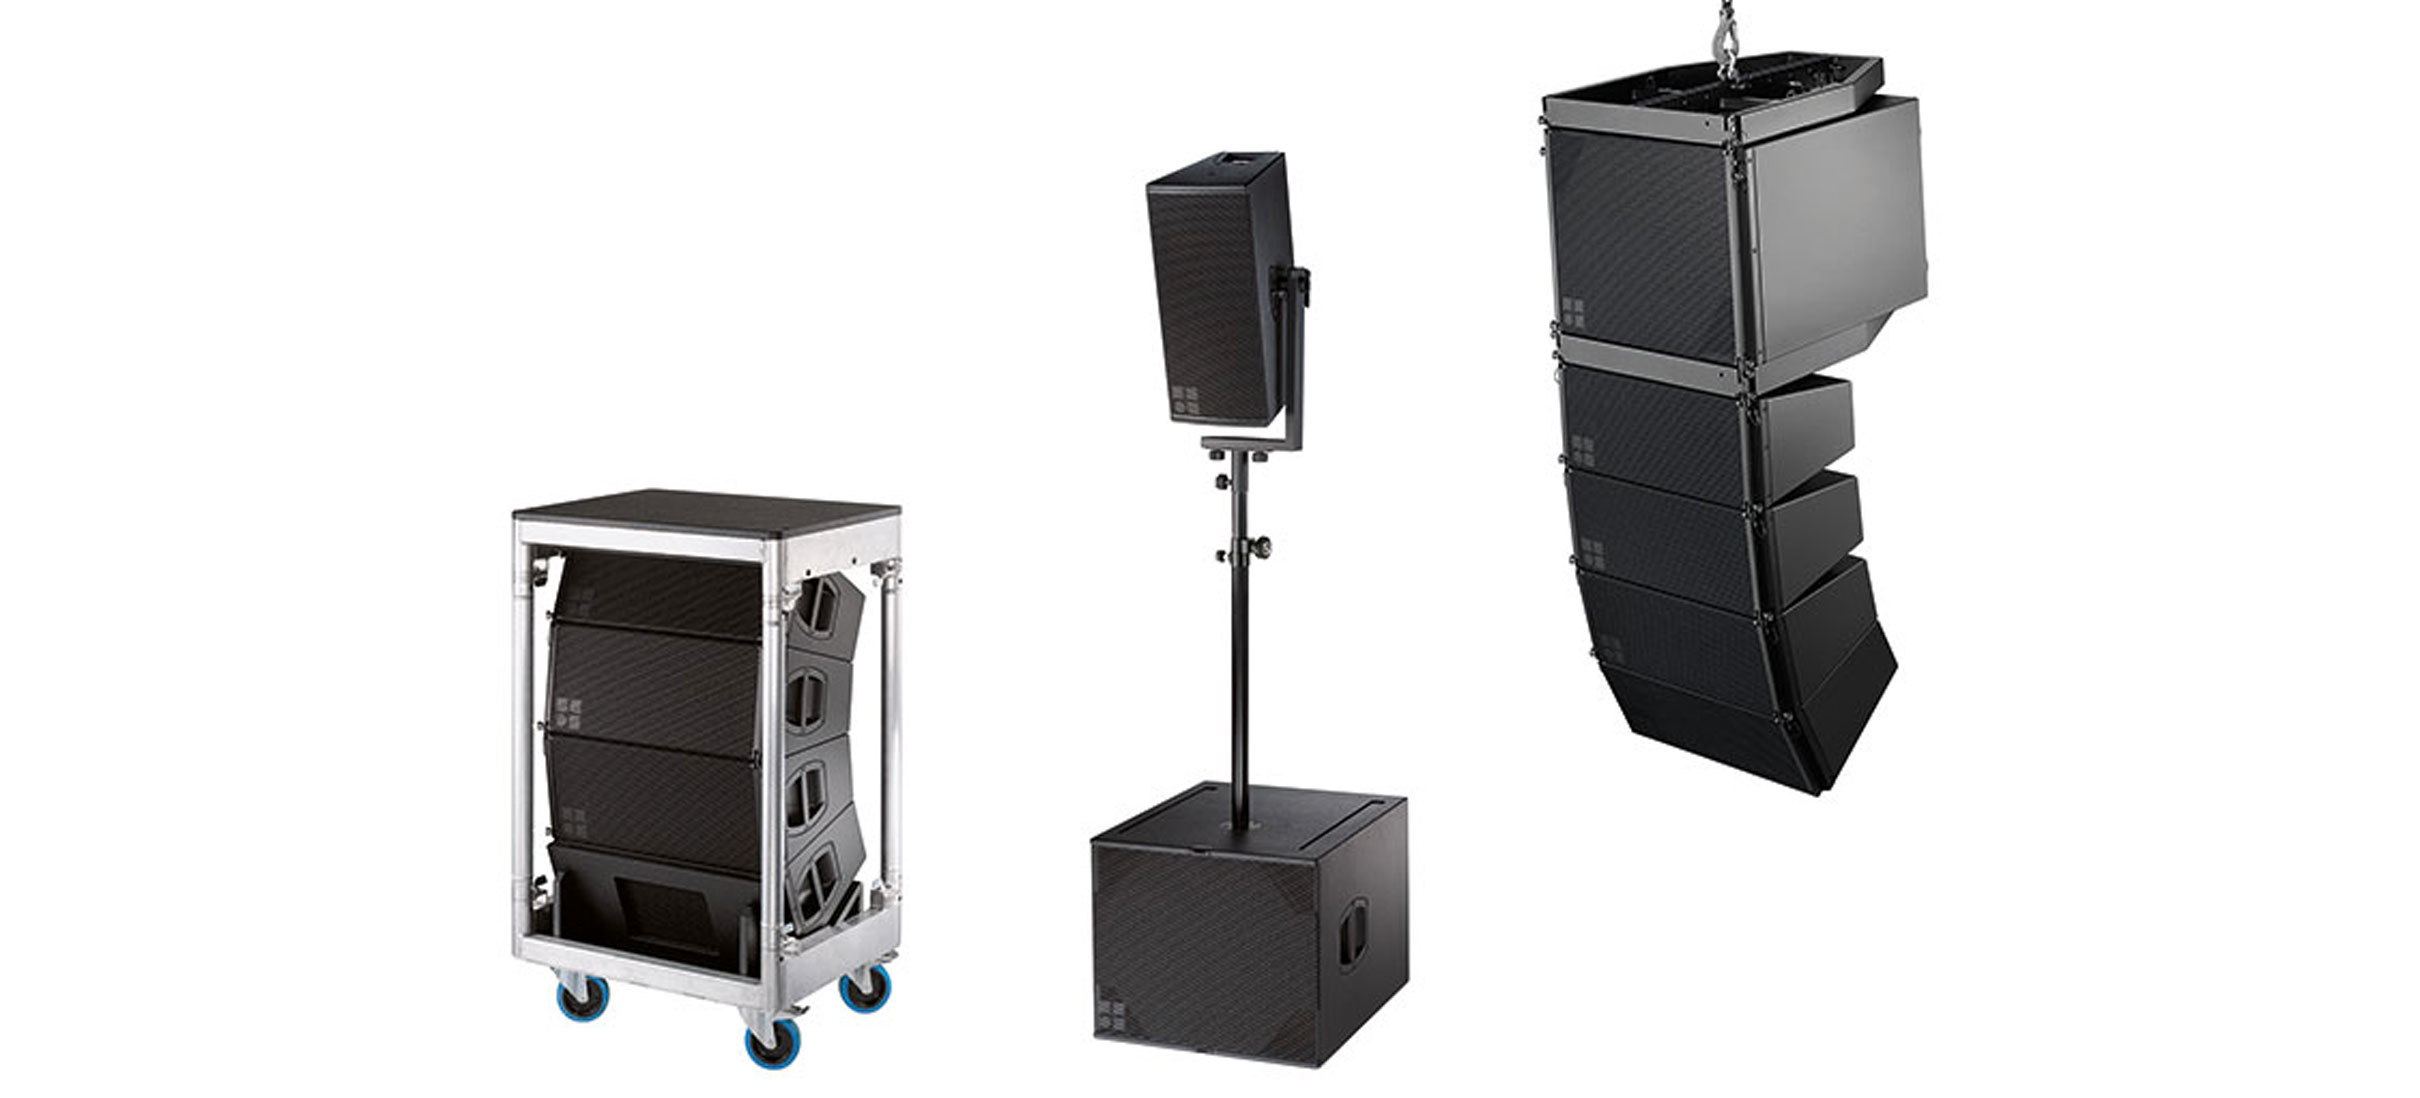 Not just any old workhorse: the absolute Y-Series from d&b – NAS